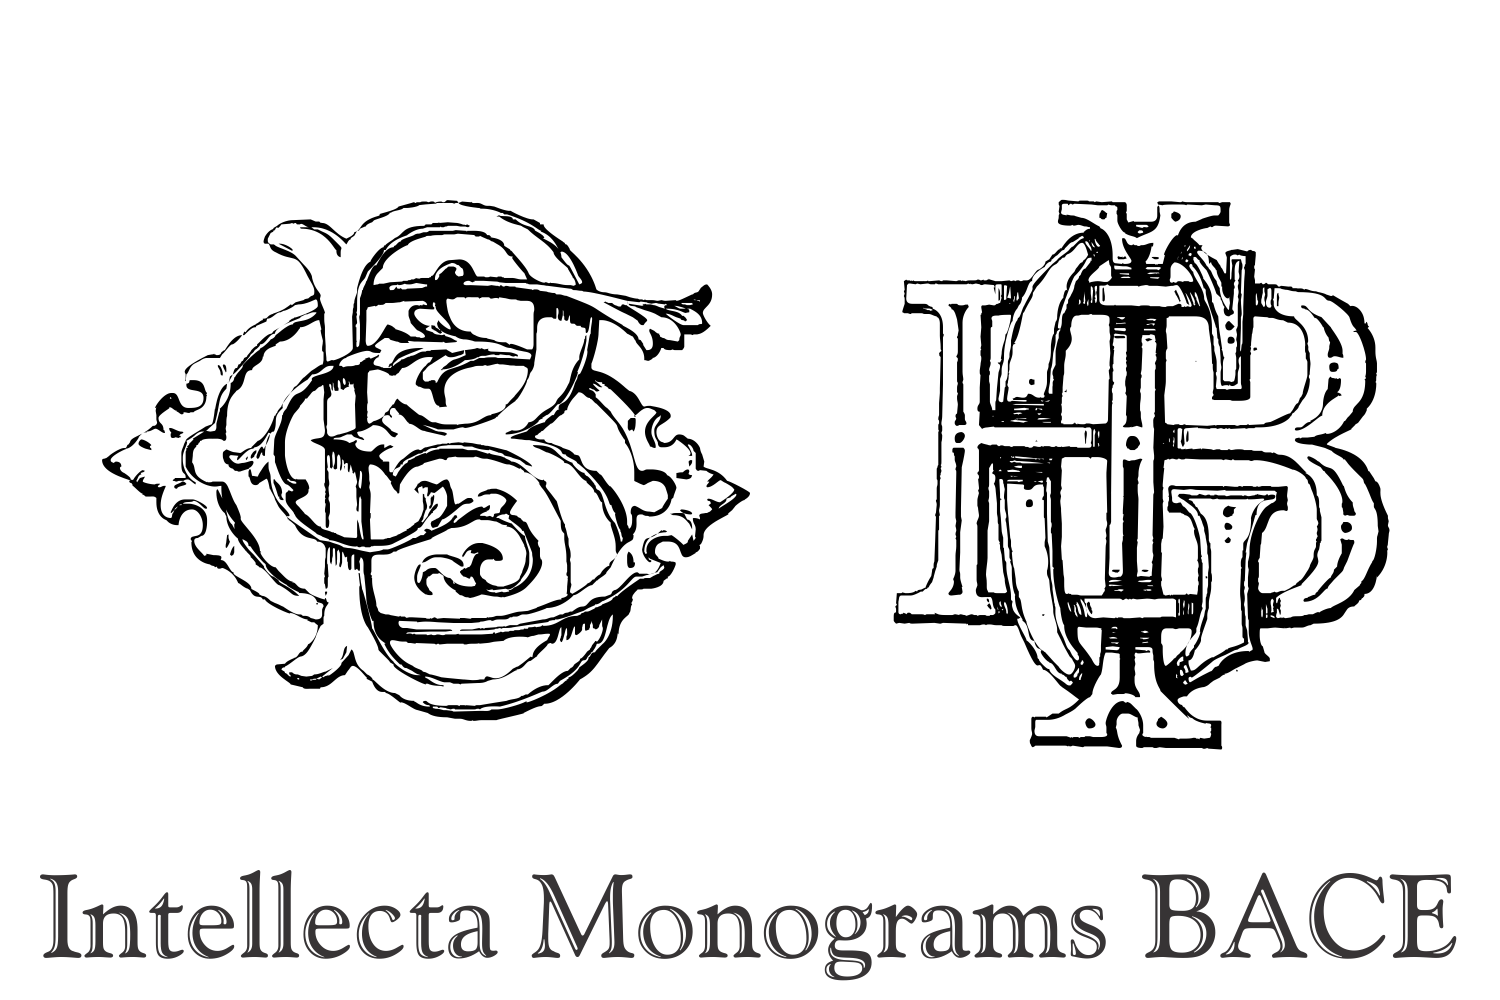 Intellecta Monograms BACE example image 6